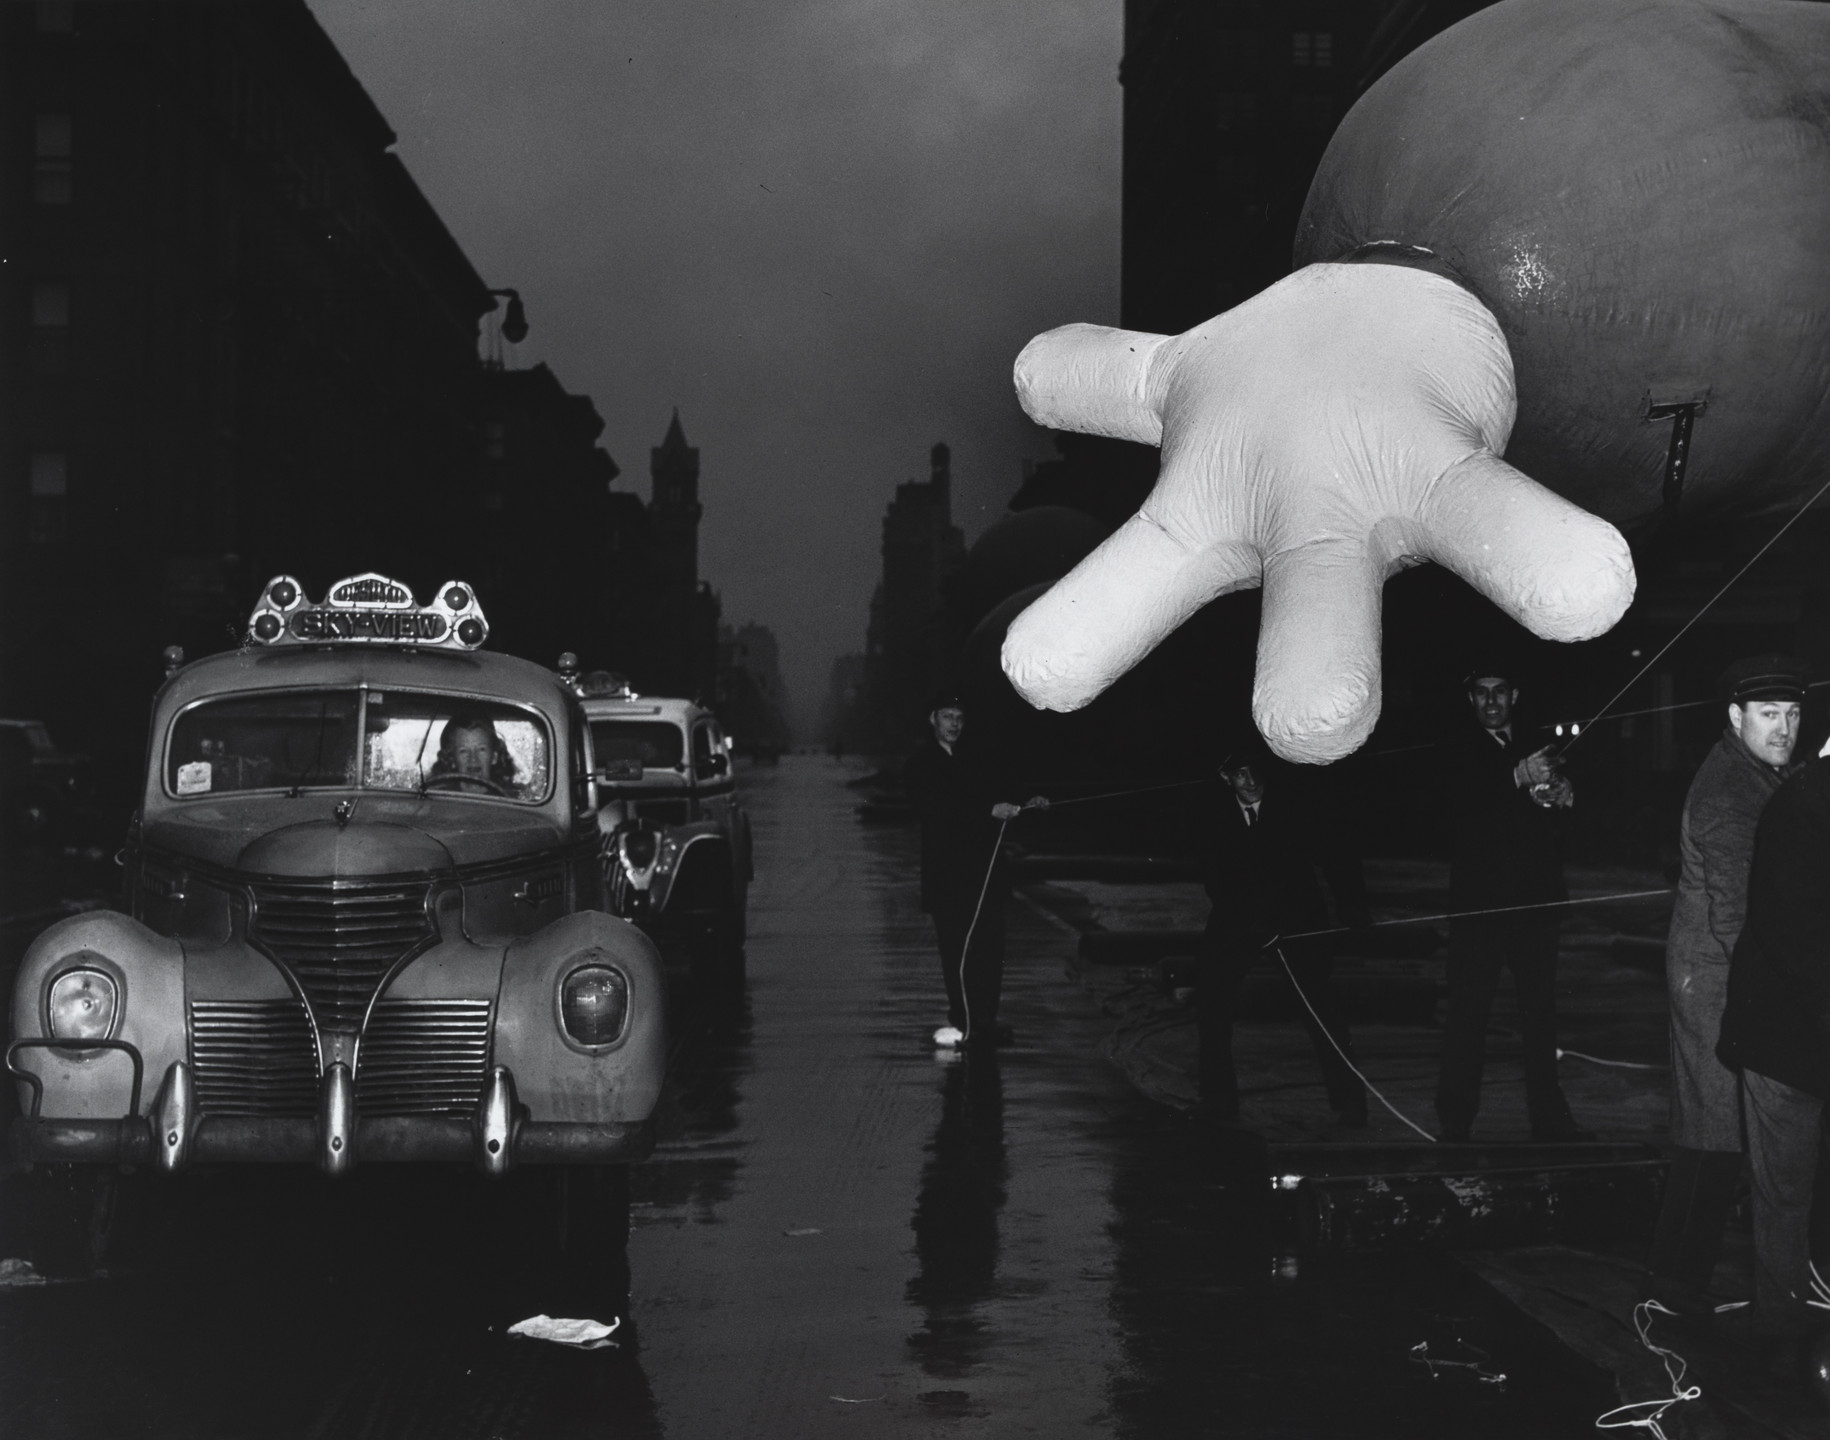 Weegee (Arthur Fellig). Macy's Thanksgiving Day Parade. c. 1942